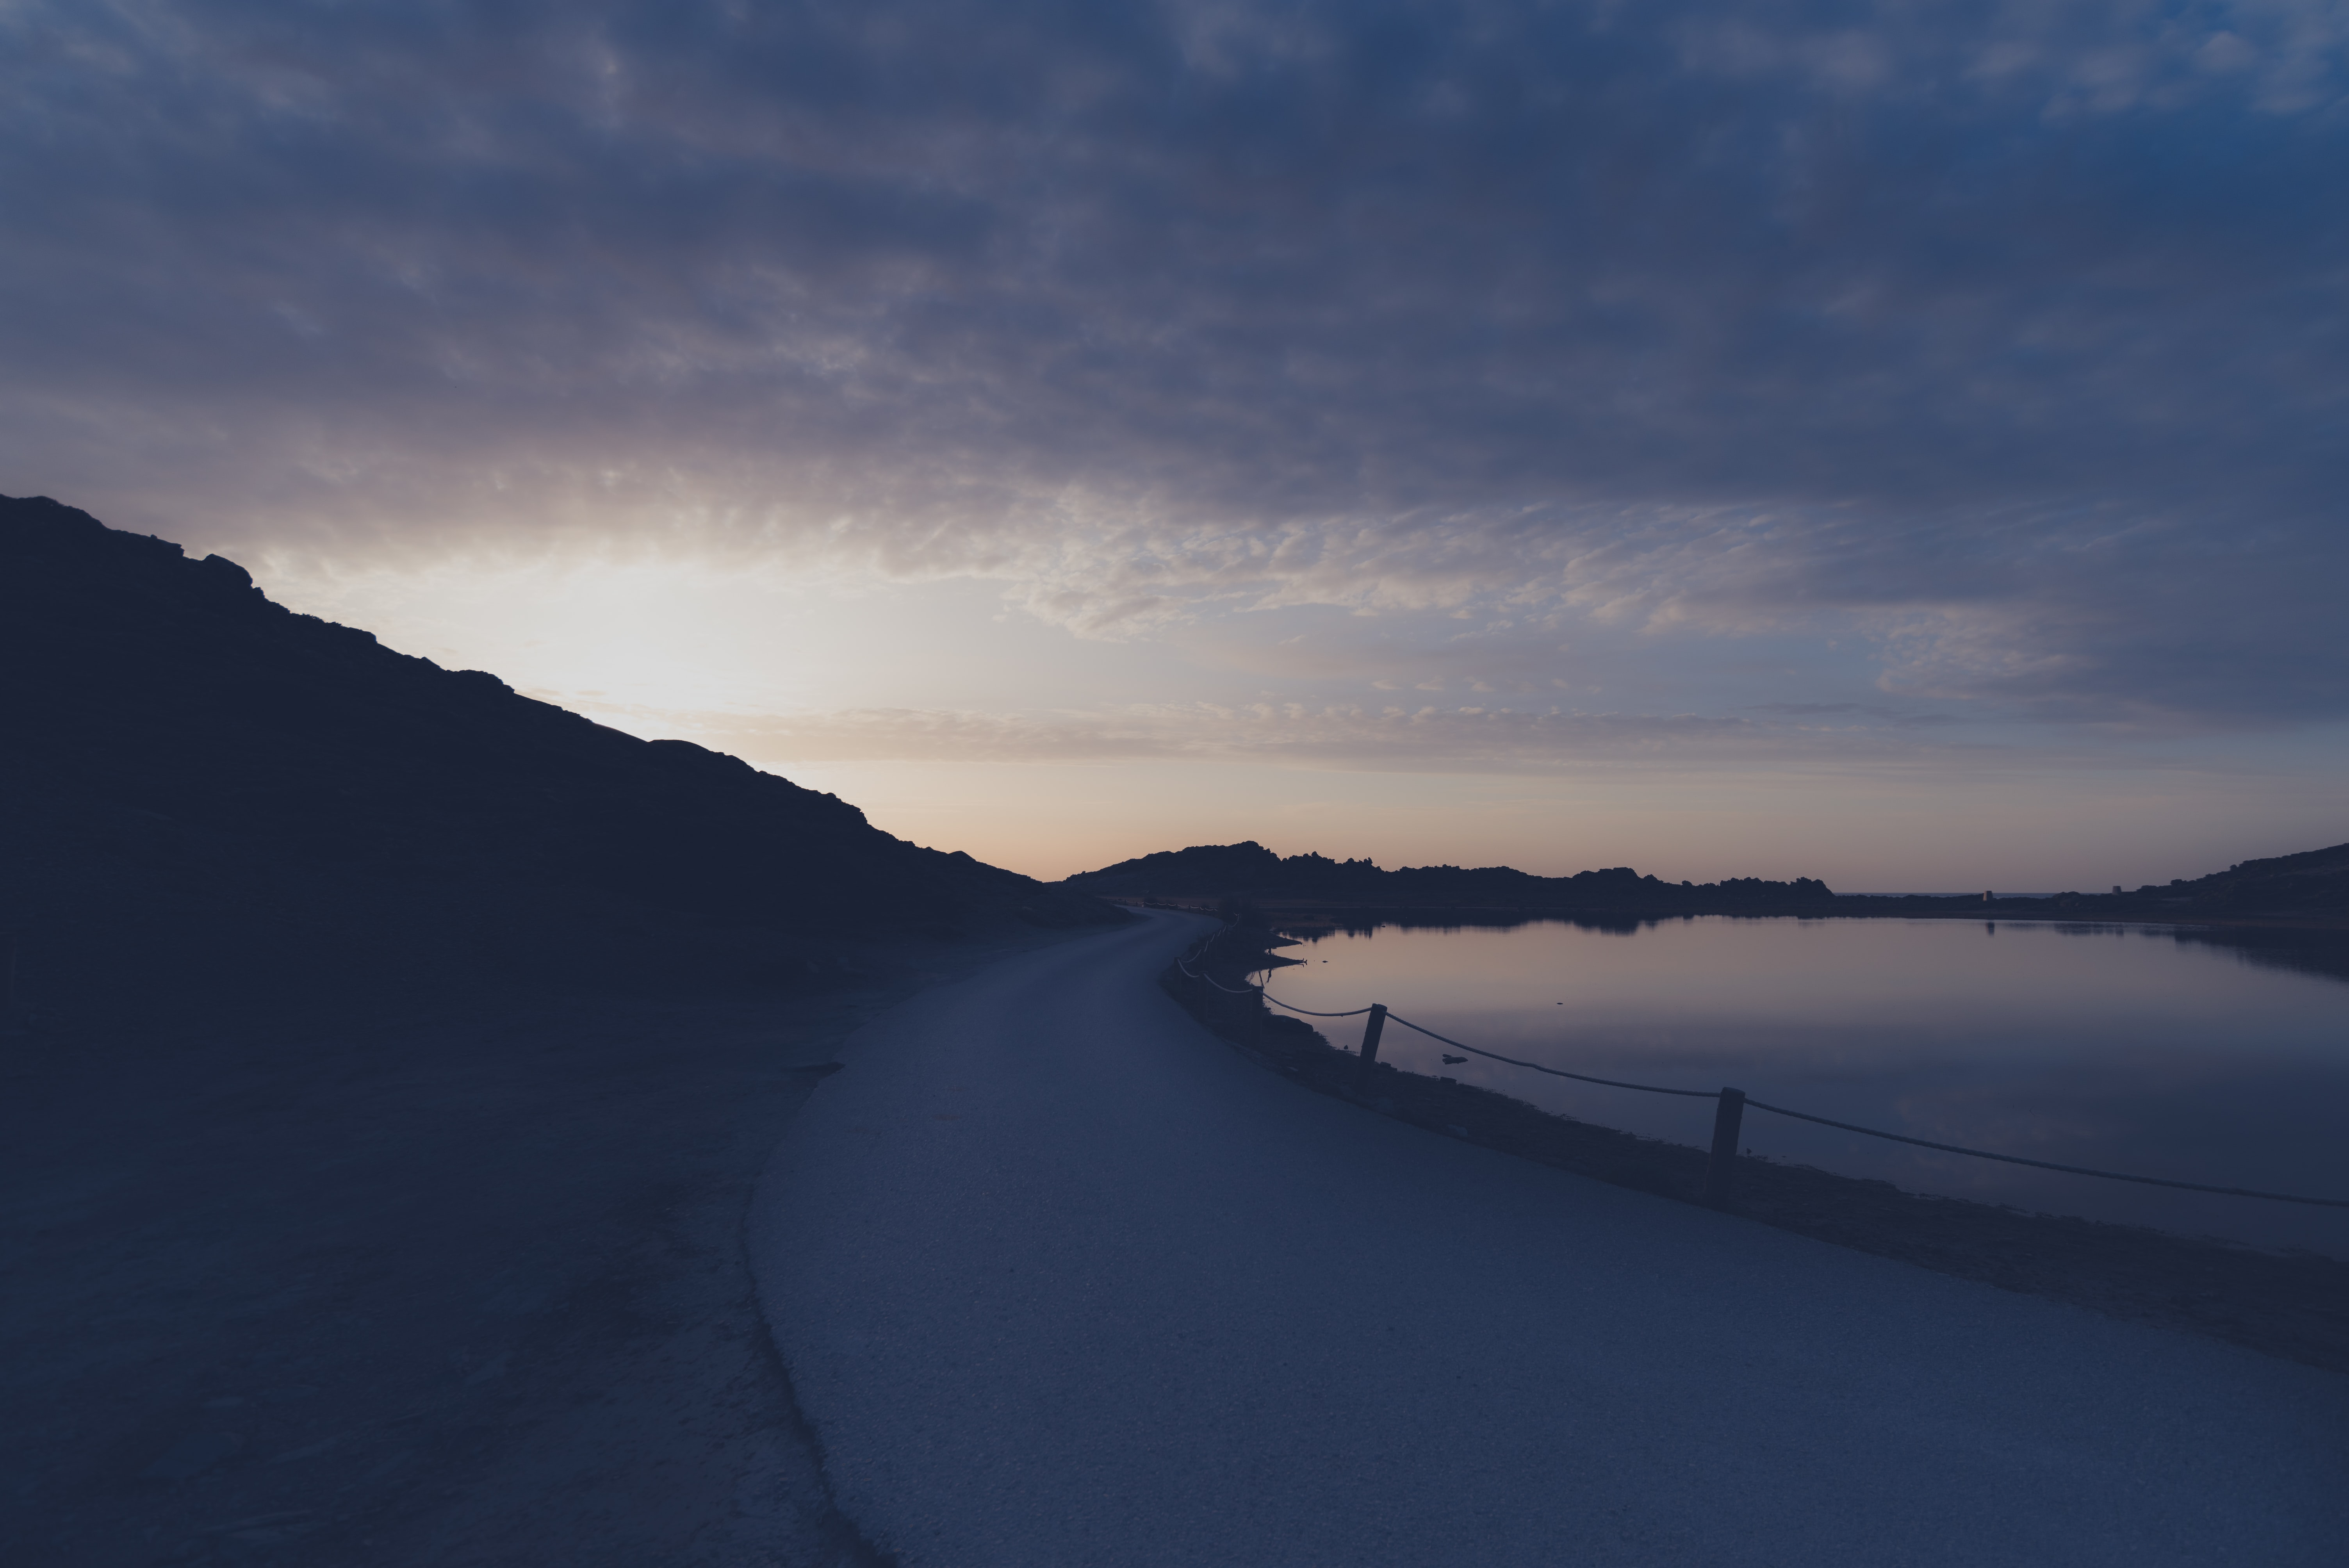 concrete road near body of water during sunrise